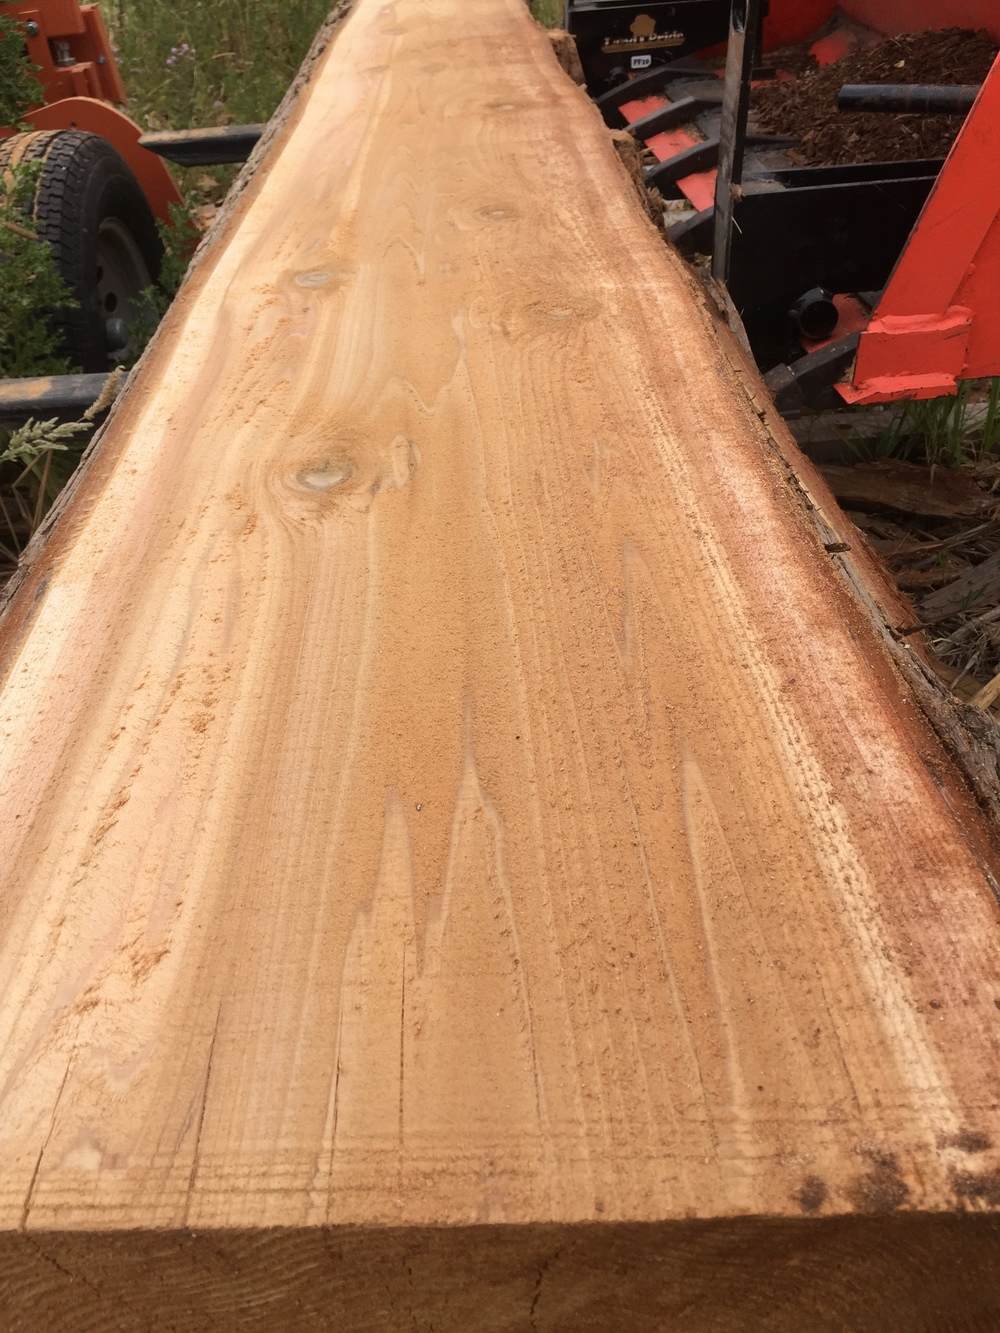 This was our first time milling Cedar, and the grain proved to be gorgeous! We have a small amount left over in inventory for future orders.